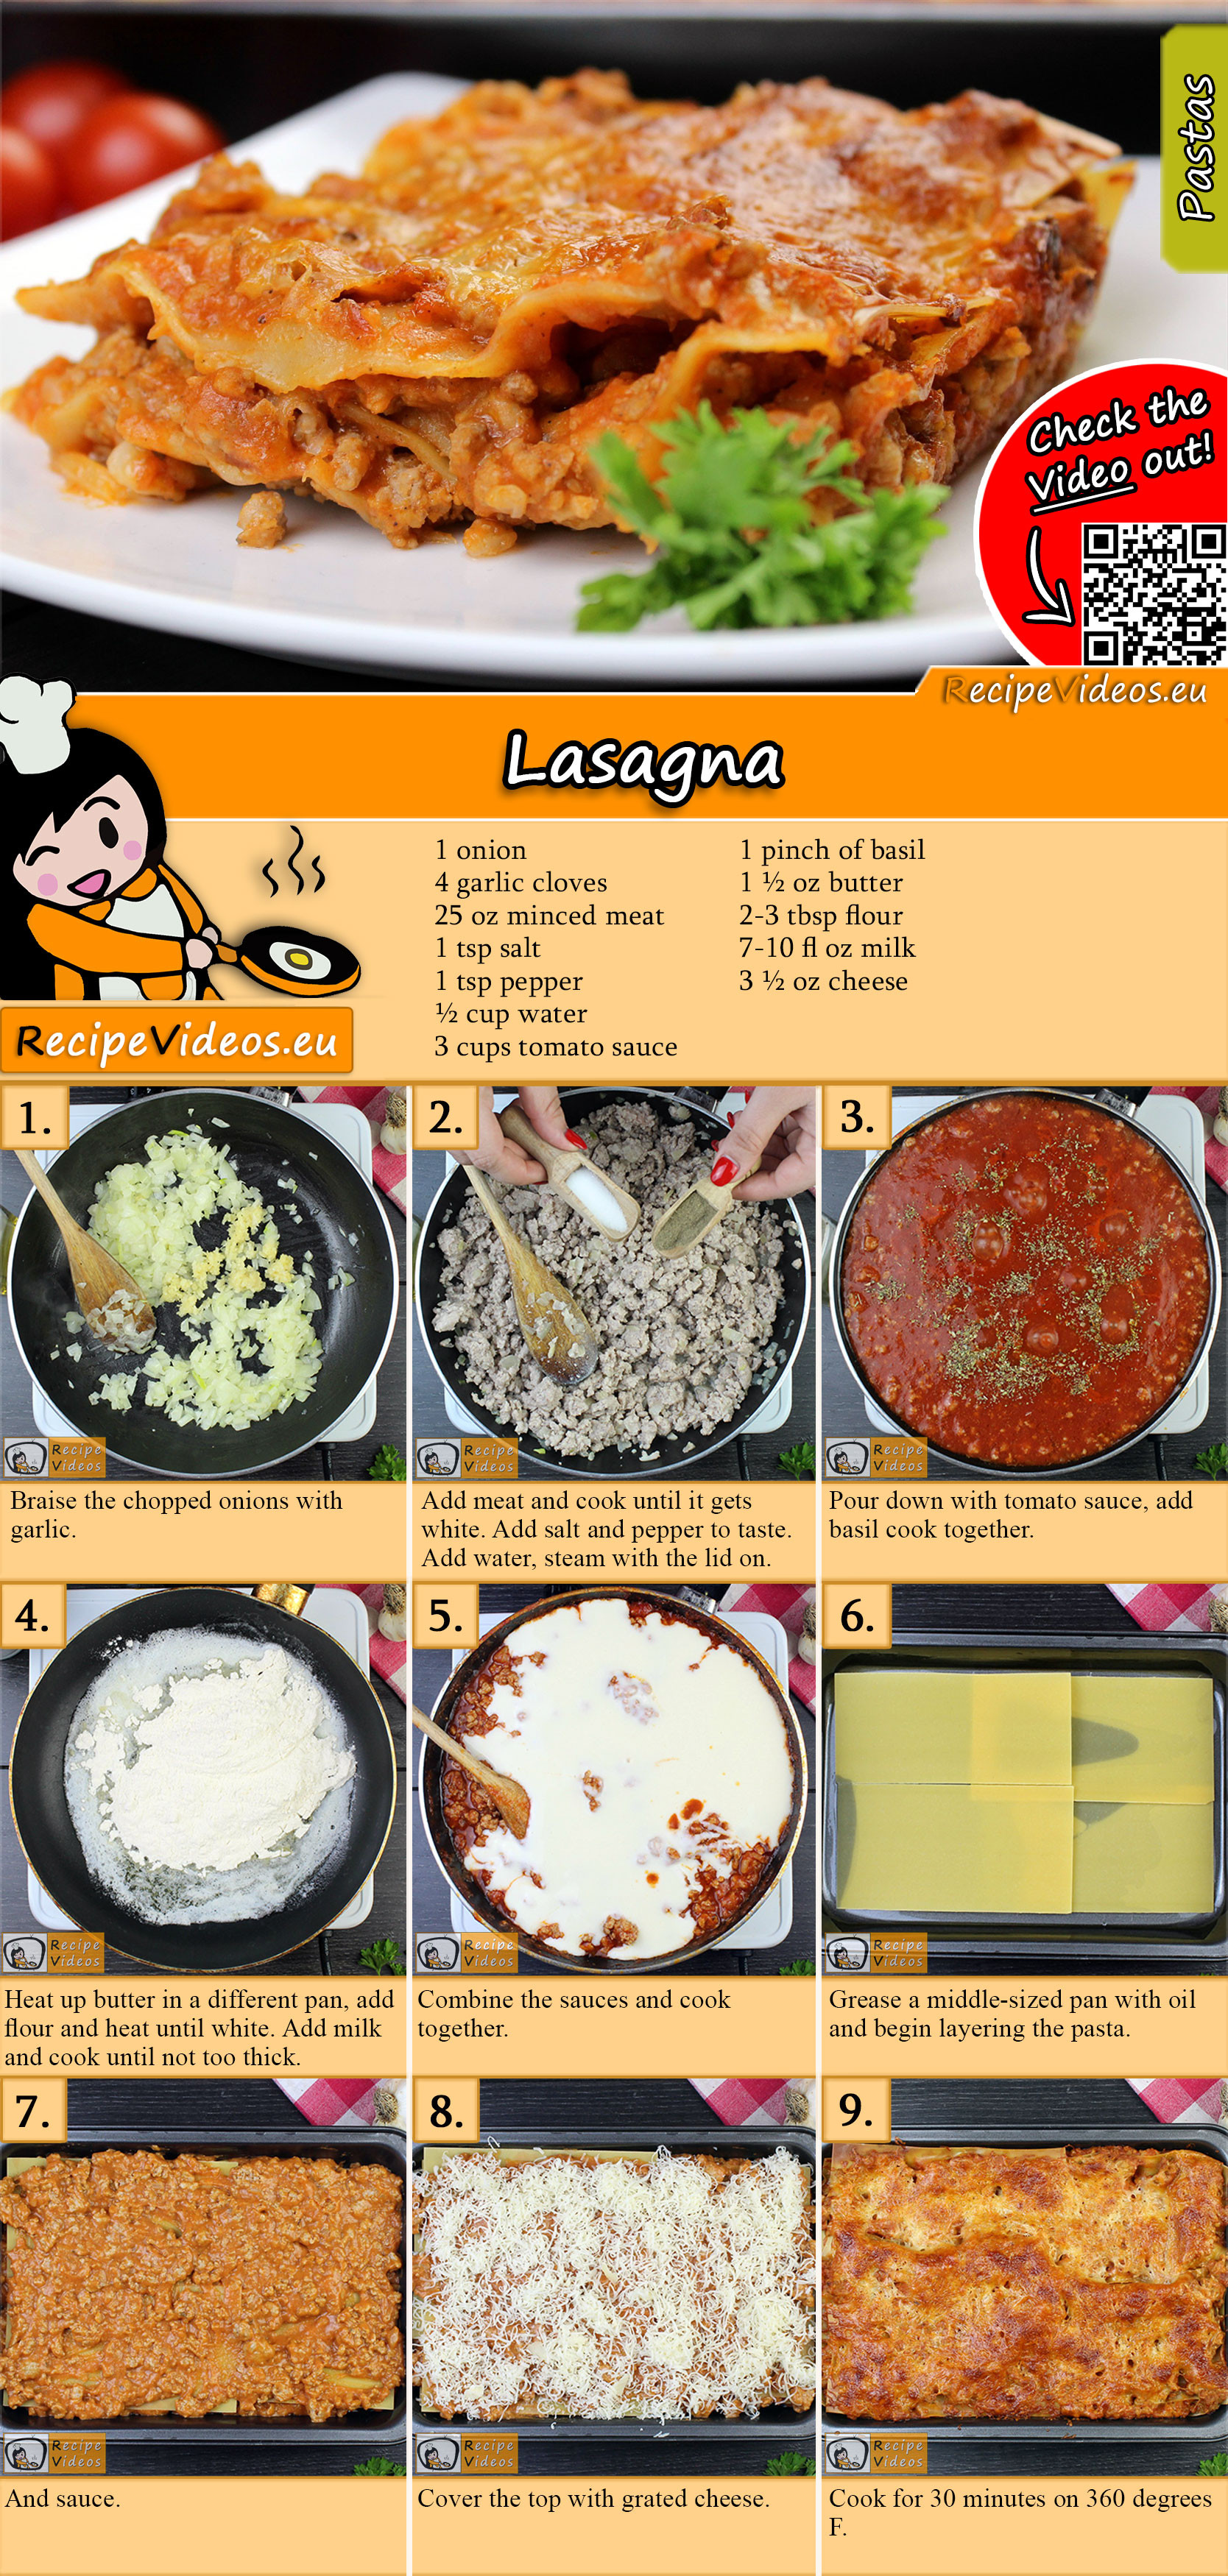 Lasagna recipe with video